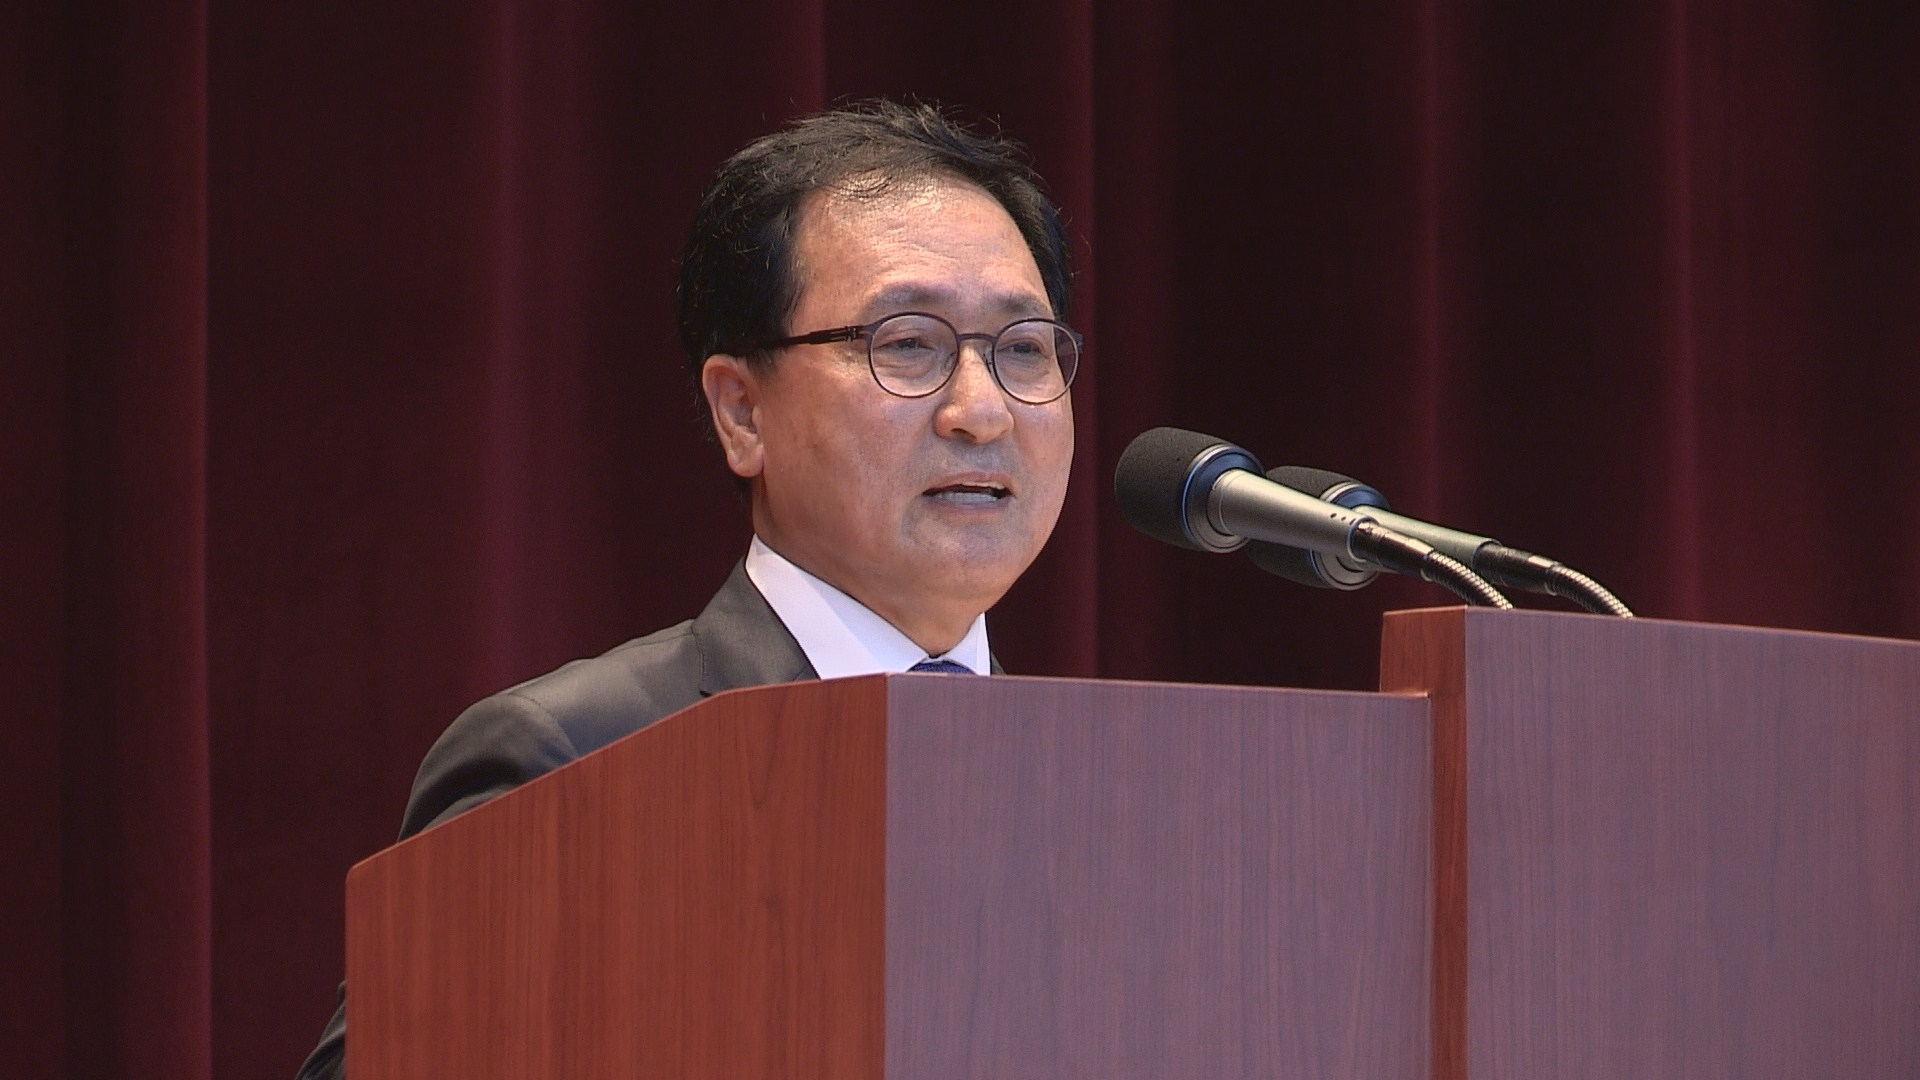 Yoo Young-min, minister of science and ICT of Korea, said there is a need to look at the advantages and disadvantages of the Blockchain technology to find useful applications.